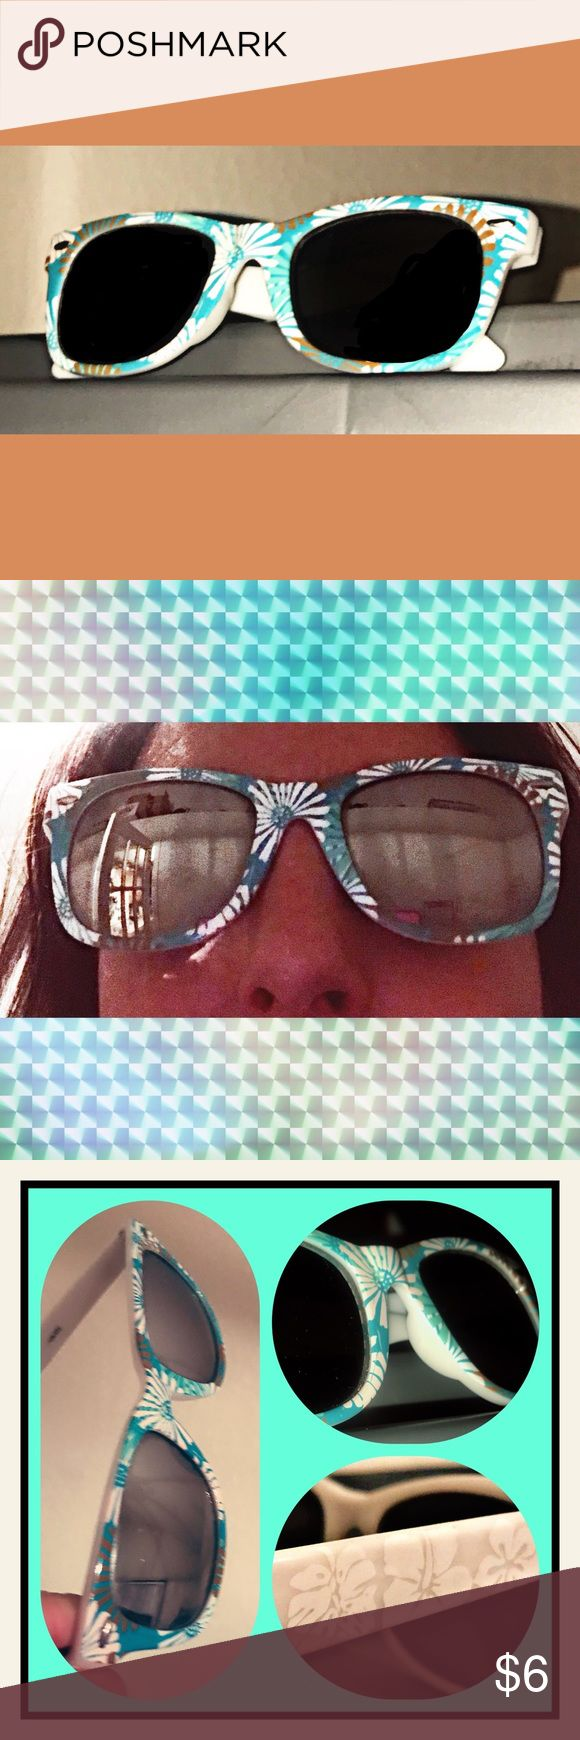 💎NEW 3 for $15!!💎 Eclectic Sunnies Cute drugstore novelty sunglasses with UVA/B protection; Worn on one vacation; Normal wear & tear & in Good Condition; White and Turquoise Colored; 💎3 for $15💎 Accessories Sunglasses